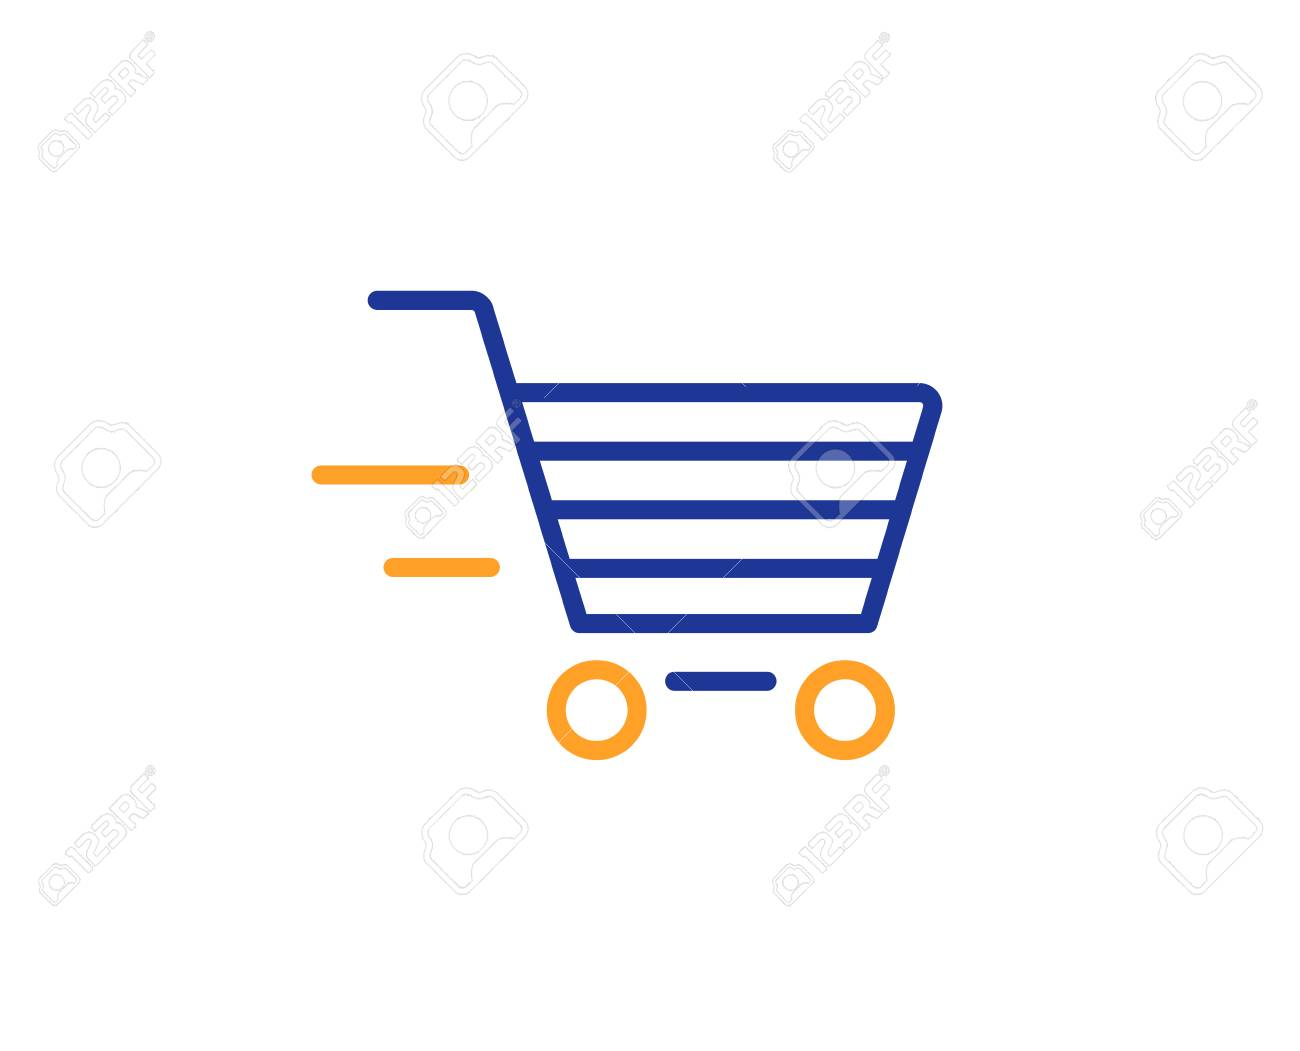 Delivery Service line icon. Shopping cart sign. Express Online buying. Supermarket basket symbol. Colorful outline concept. Blue and orange thin line color icon. Delivery shopping Vector - 112885717